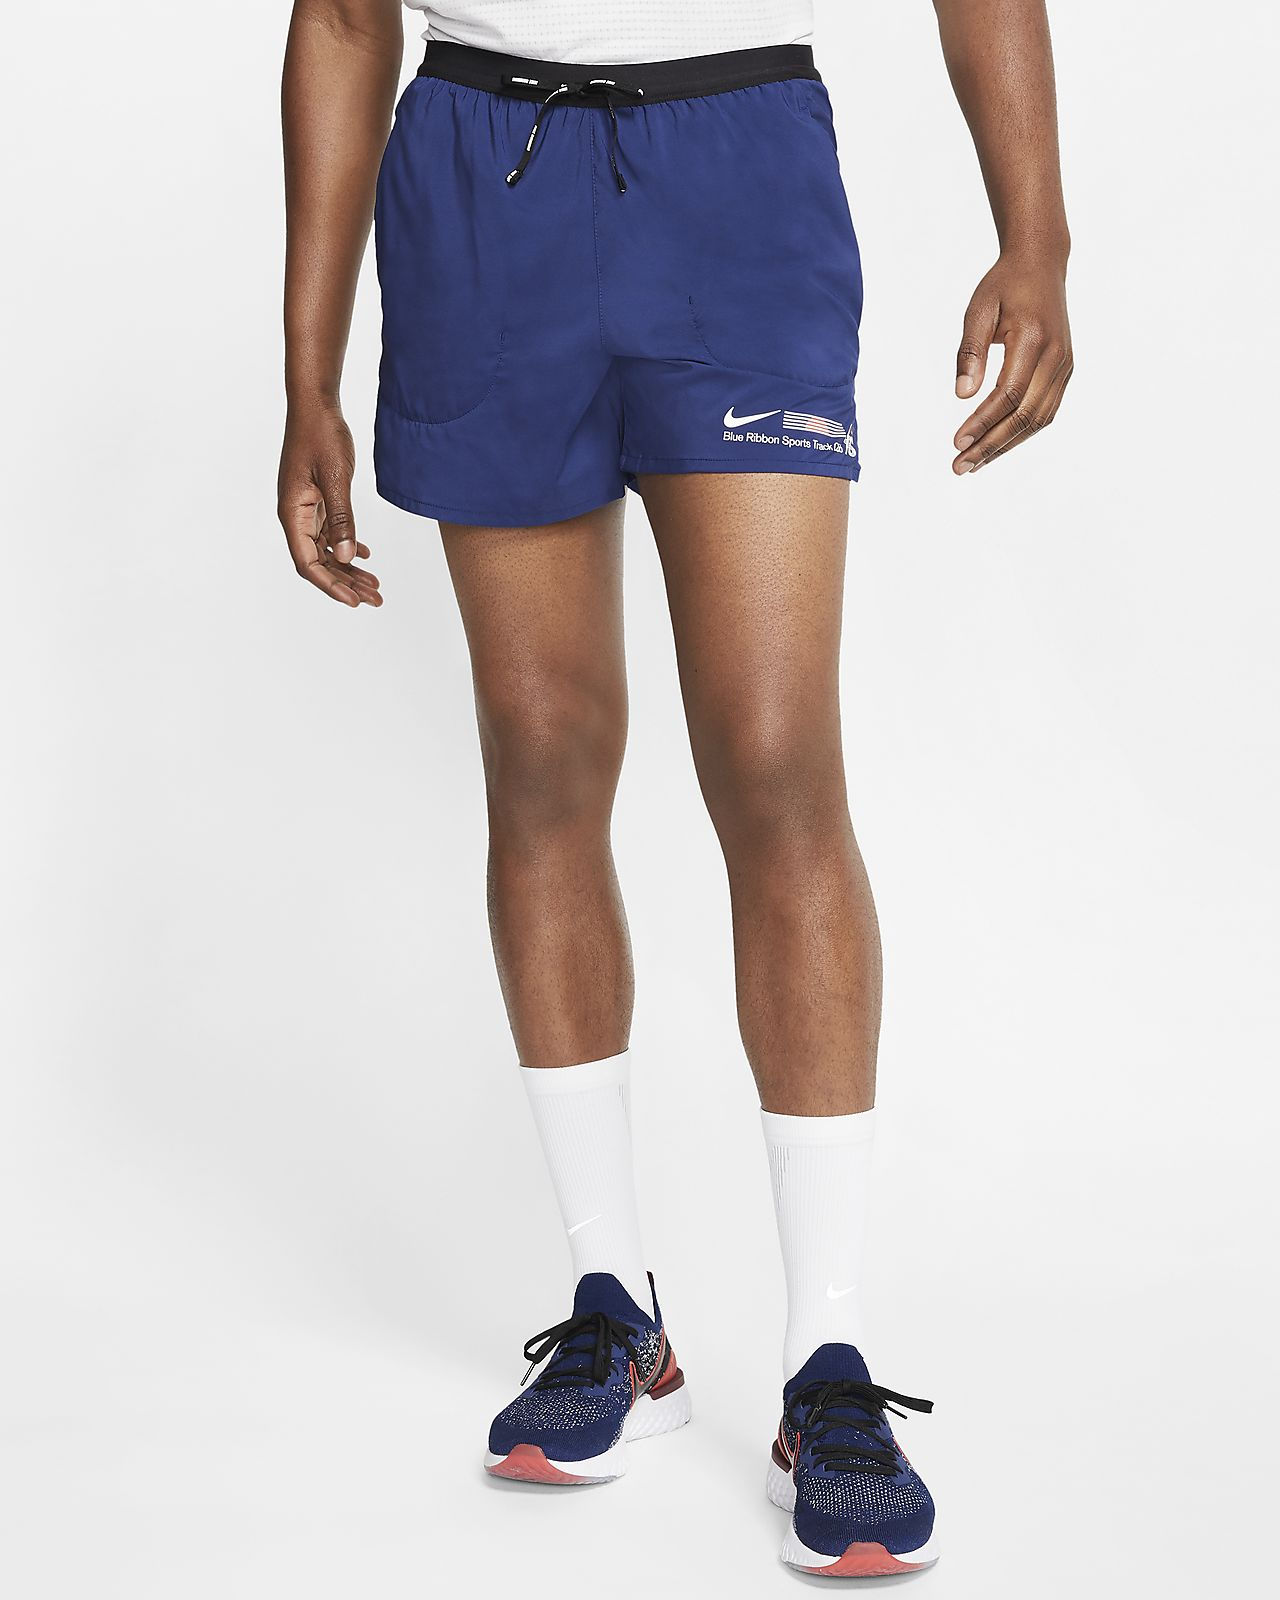 Nike Flex Stride Blue Ribbon Sports fôret løpeshorts (13 cm) til herre